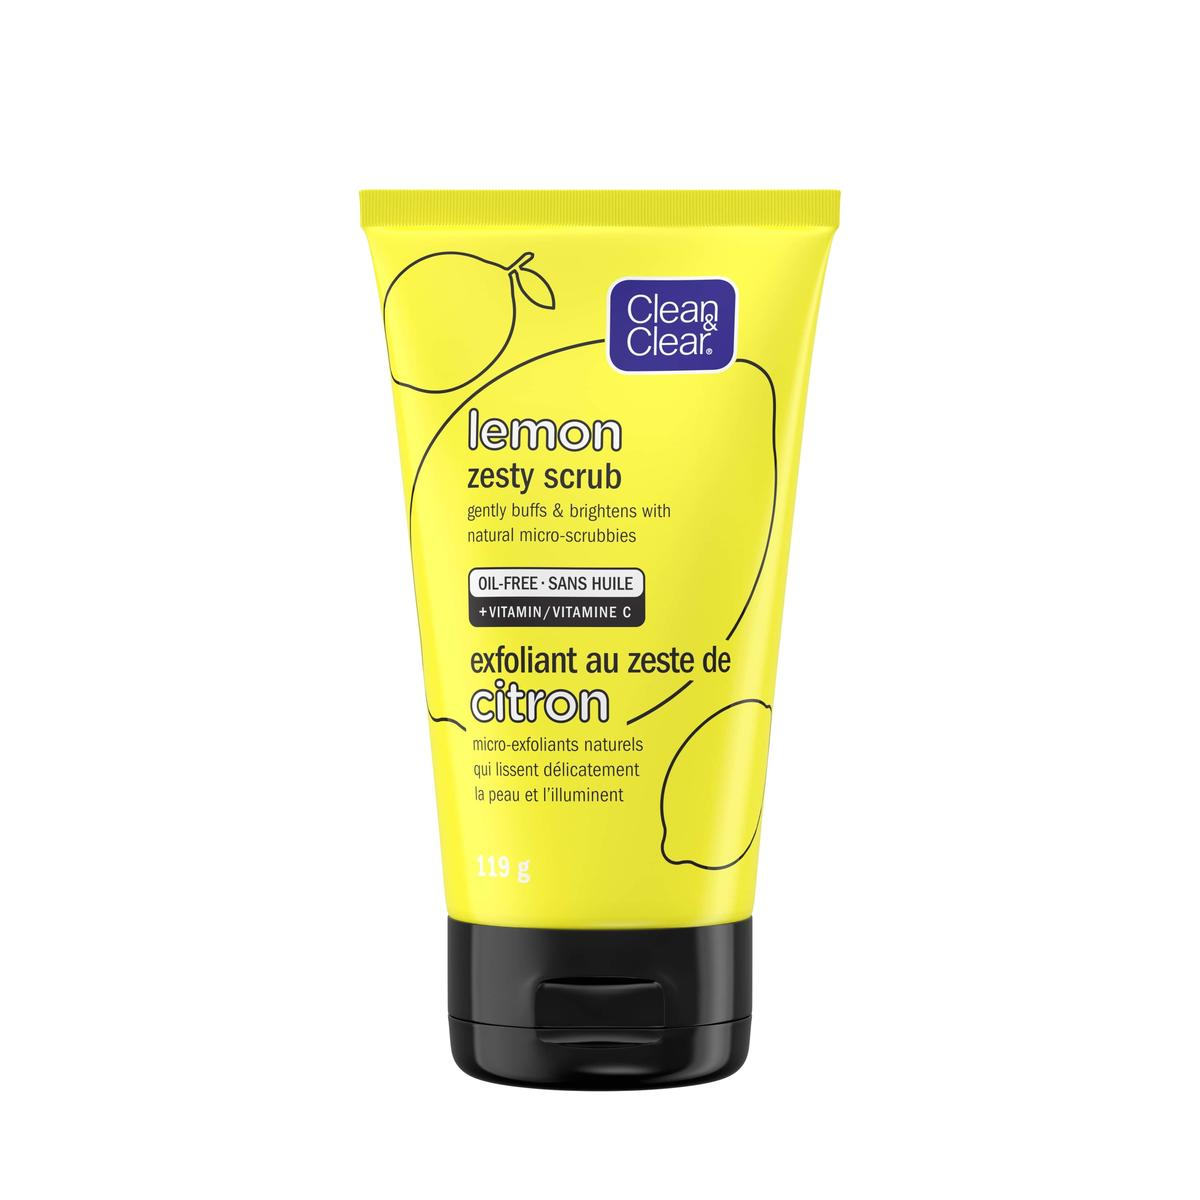 Clean and clear lemon zesty scrub in yellow tube